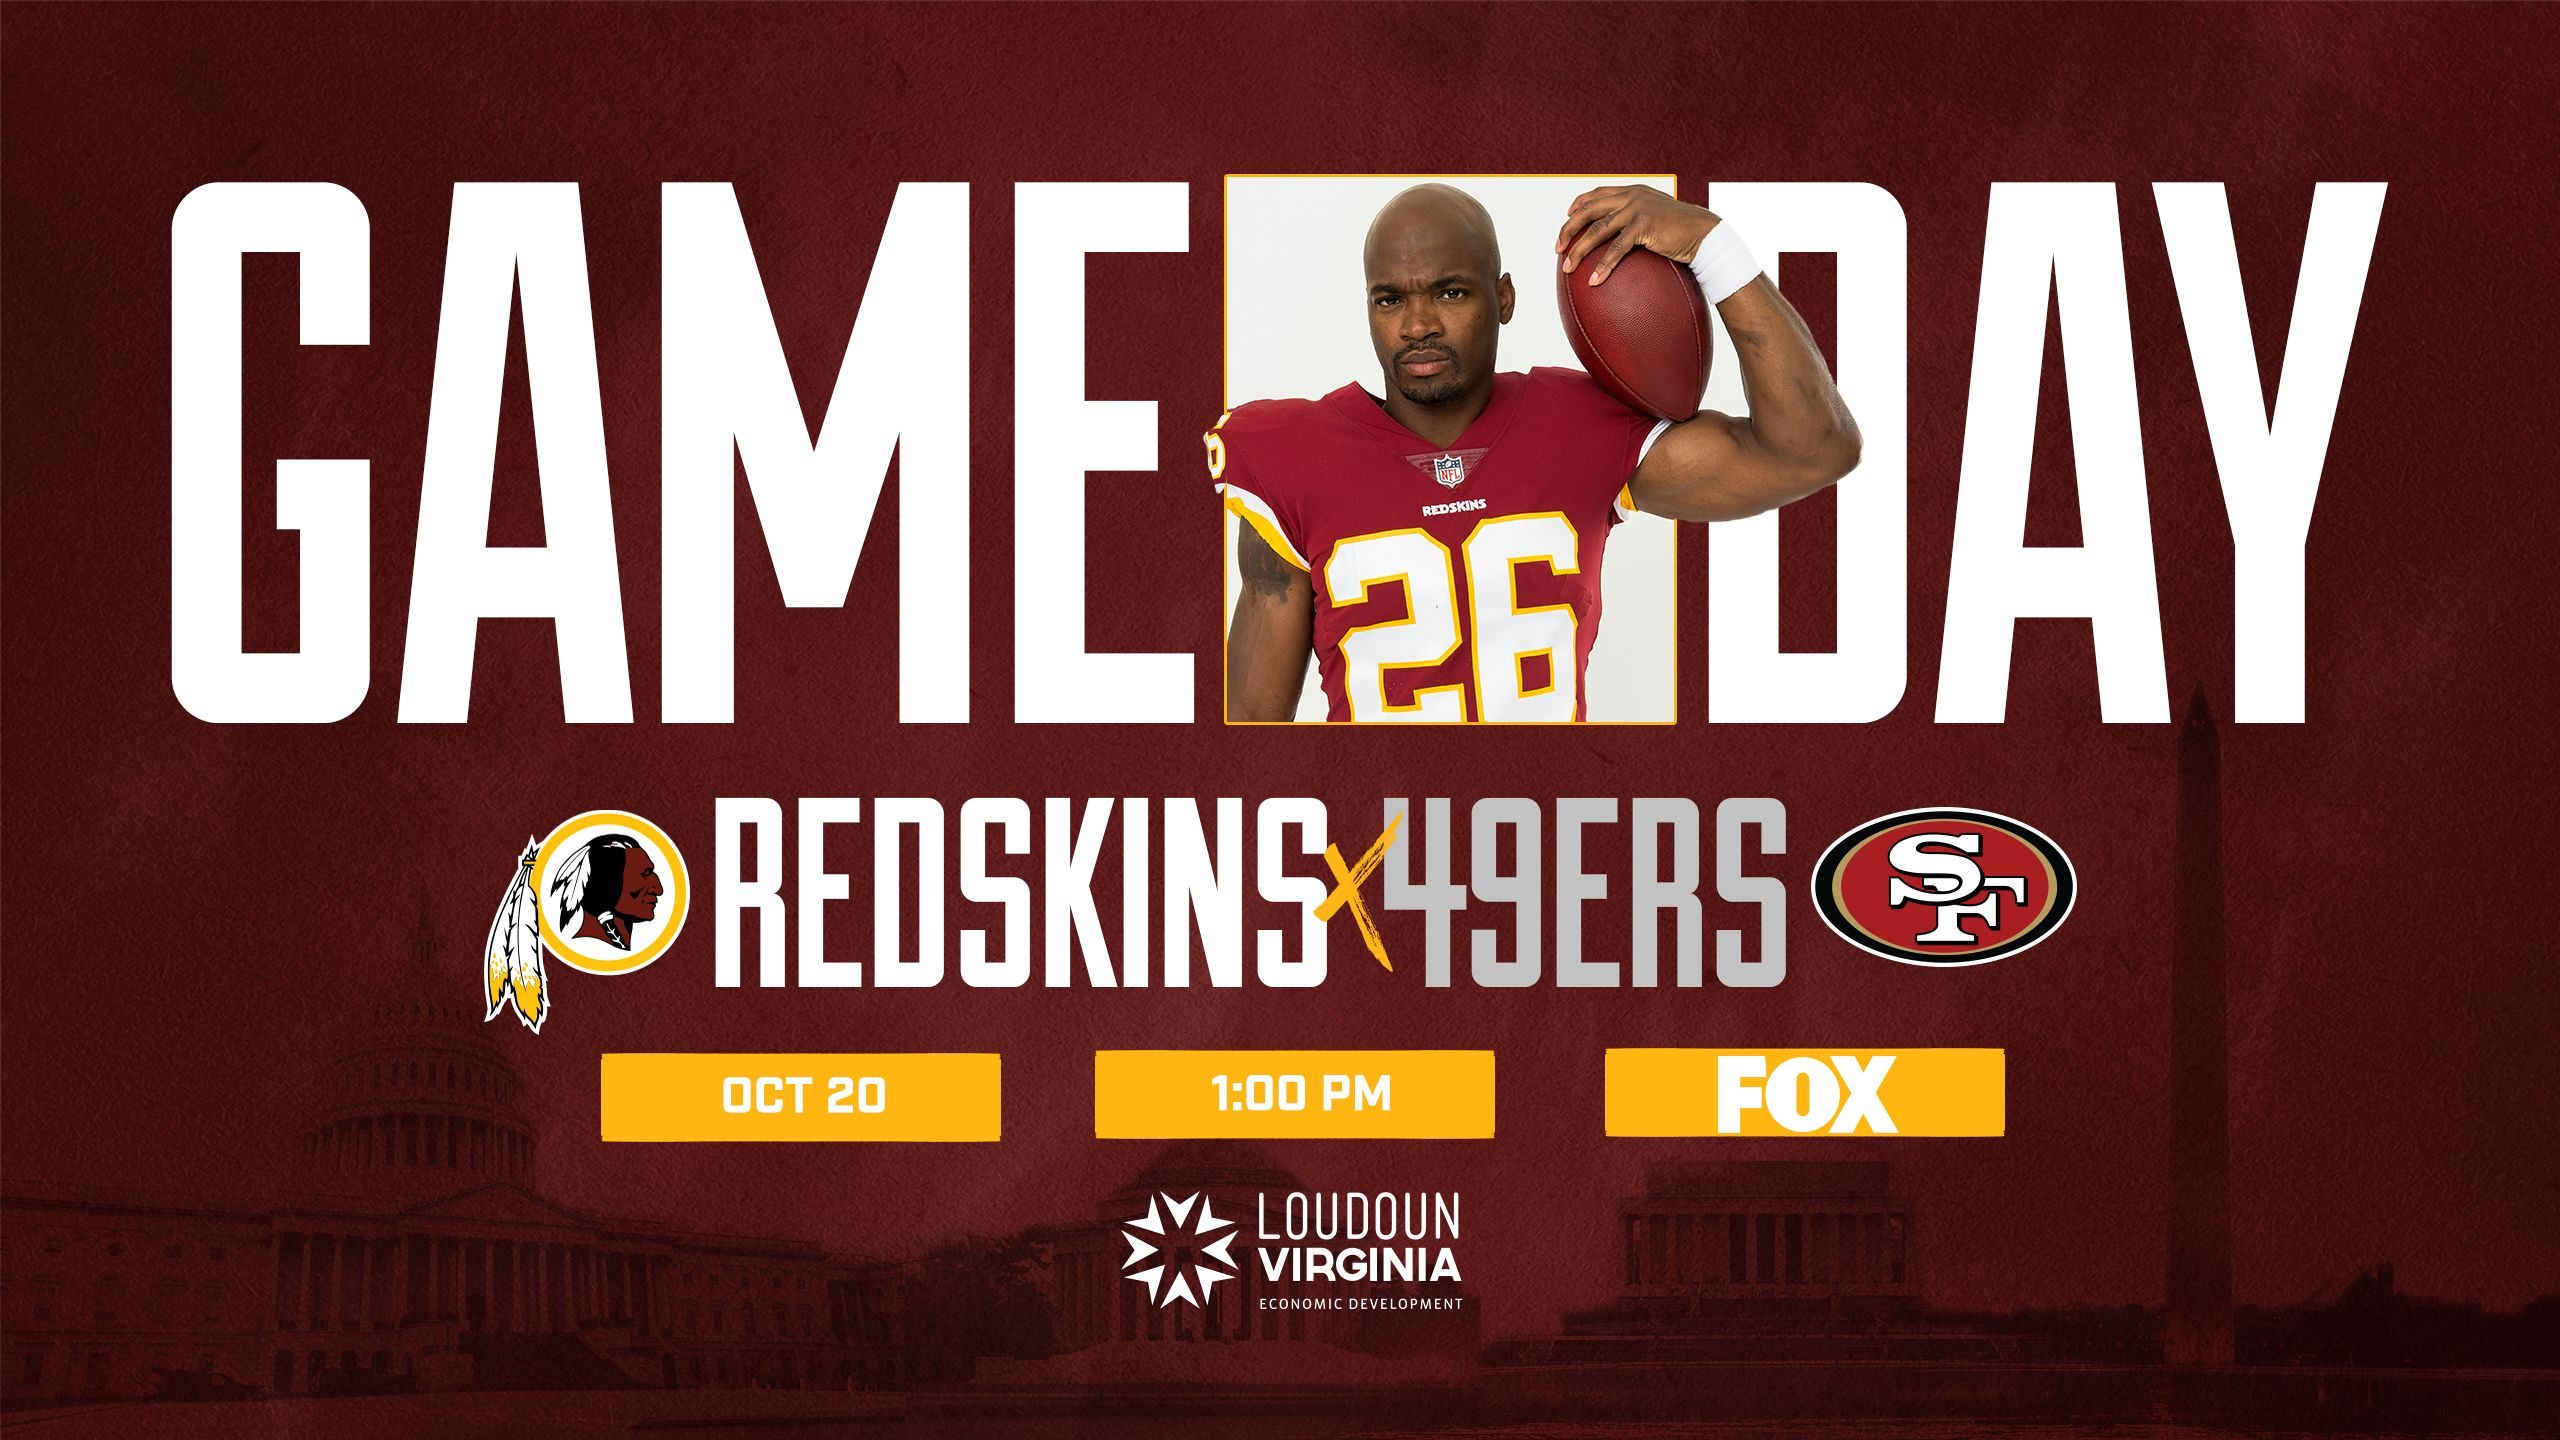 2019-week-7-49ers-gameday-header